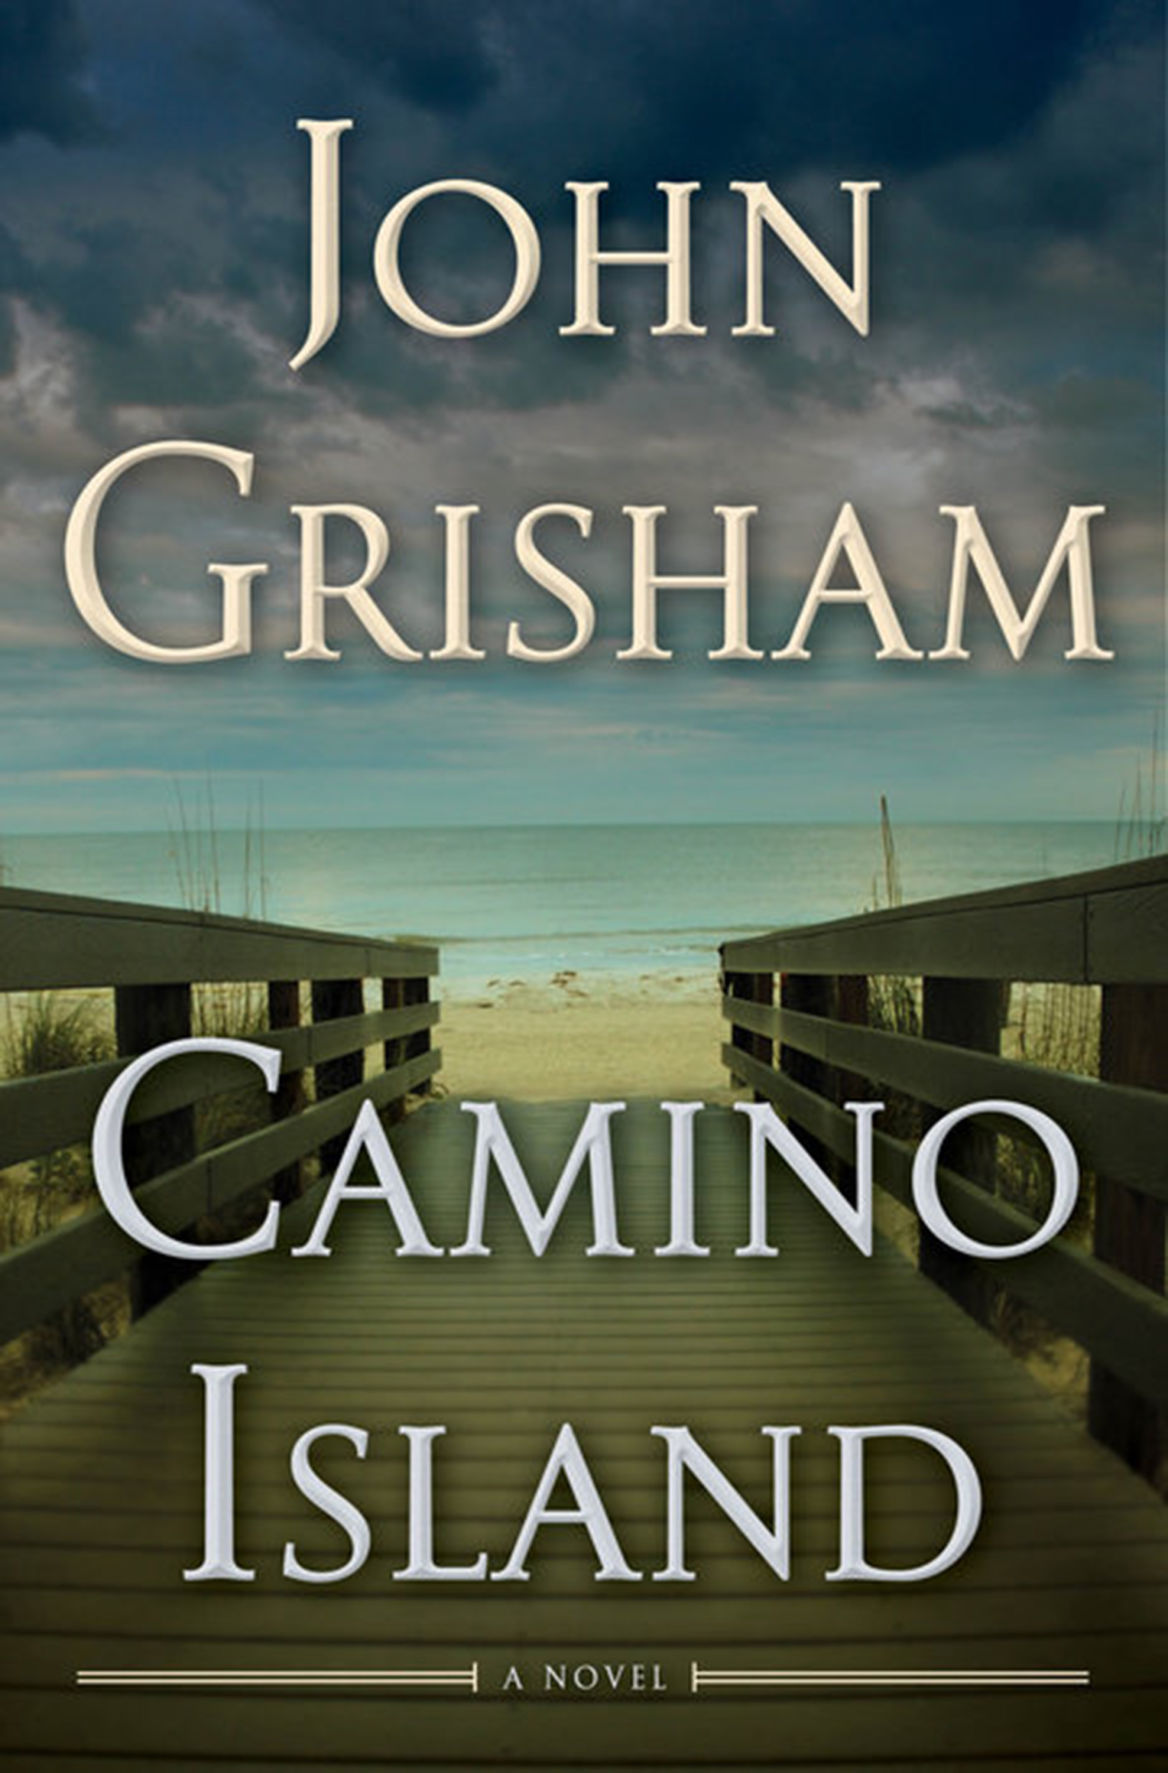 BOOKS BOOK-CAMINOISLAND-REVIEW PG